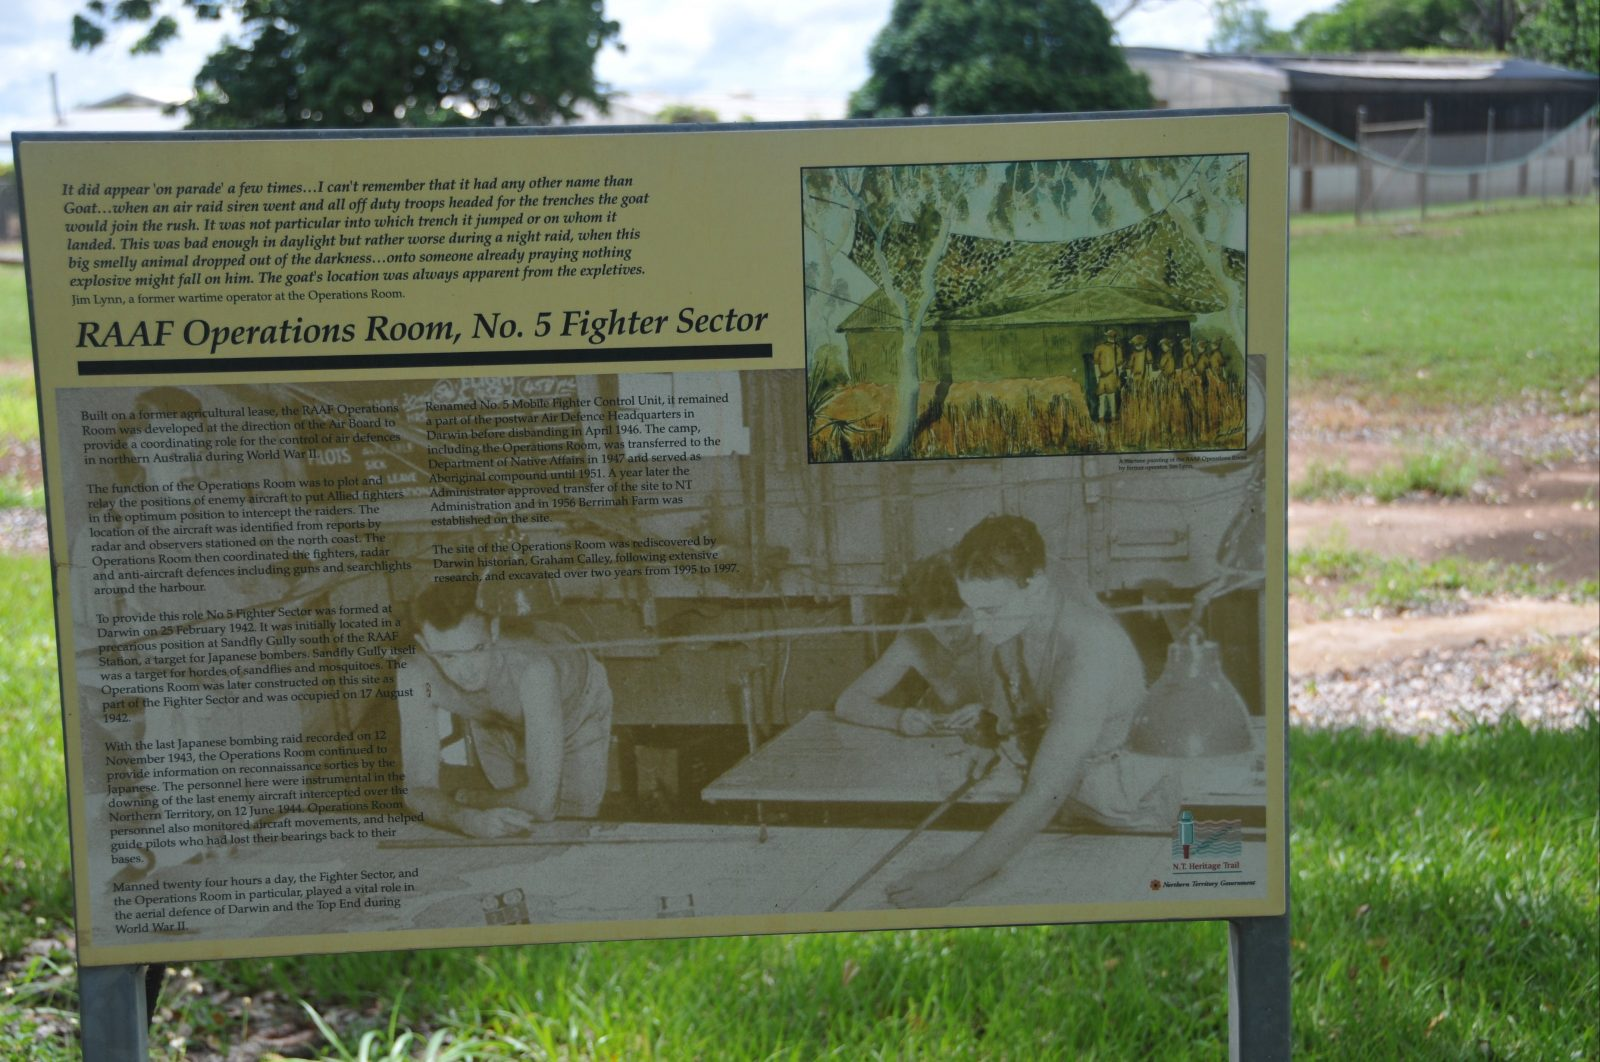 Interpretative signage at the site. A small circular brass plaque indicating the site is on the NT Heritage Register has been removed from the site.